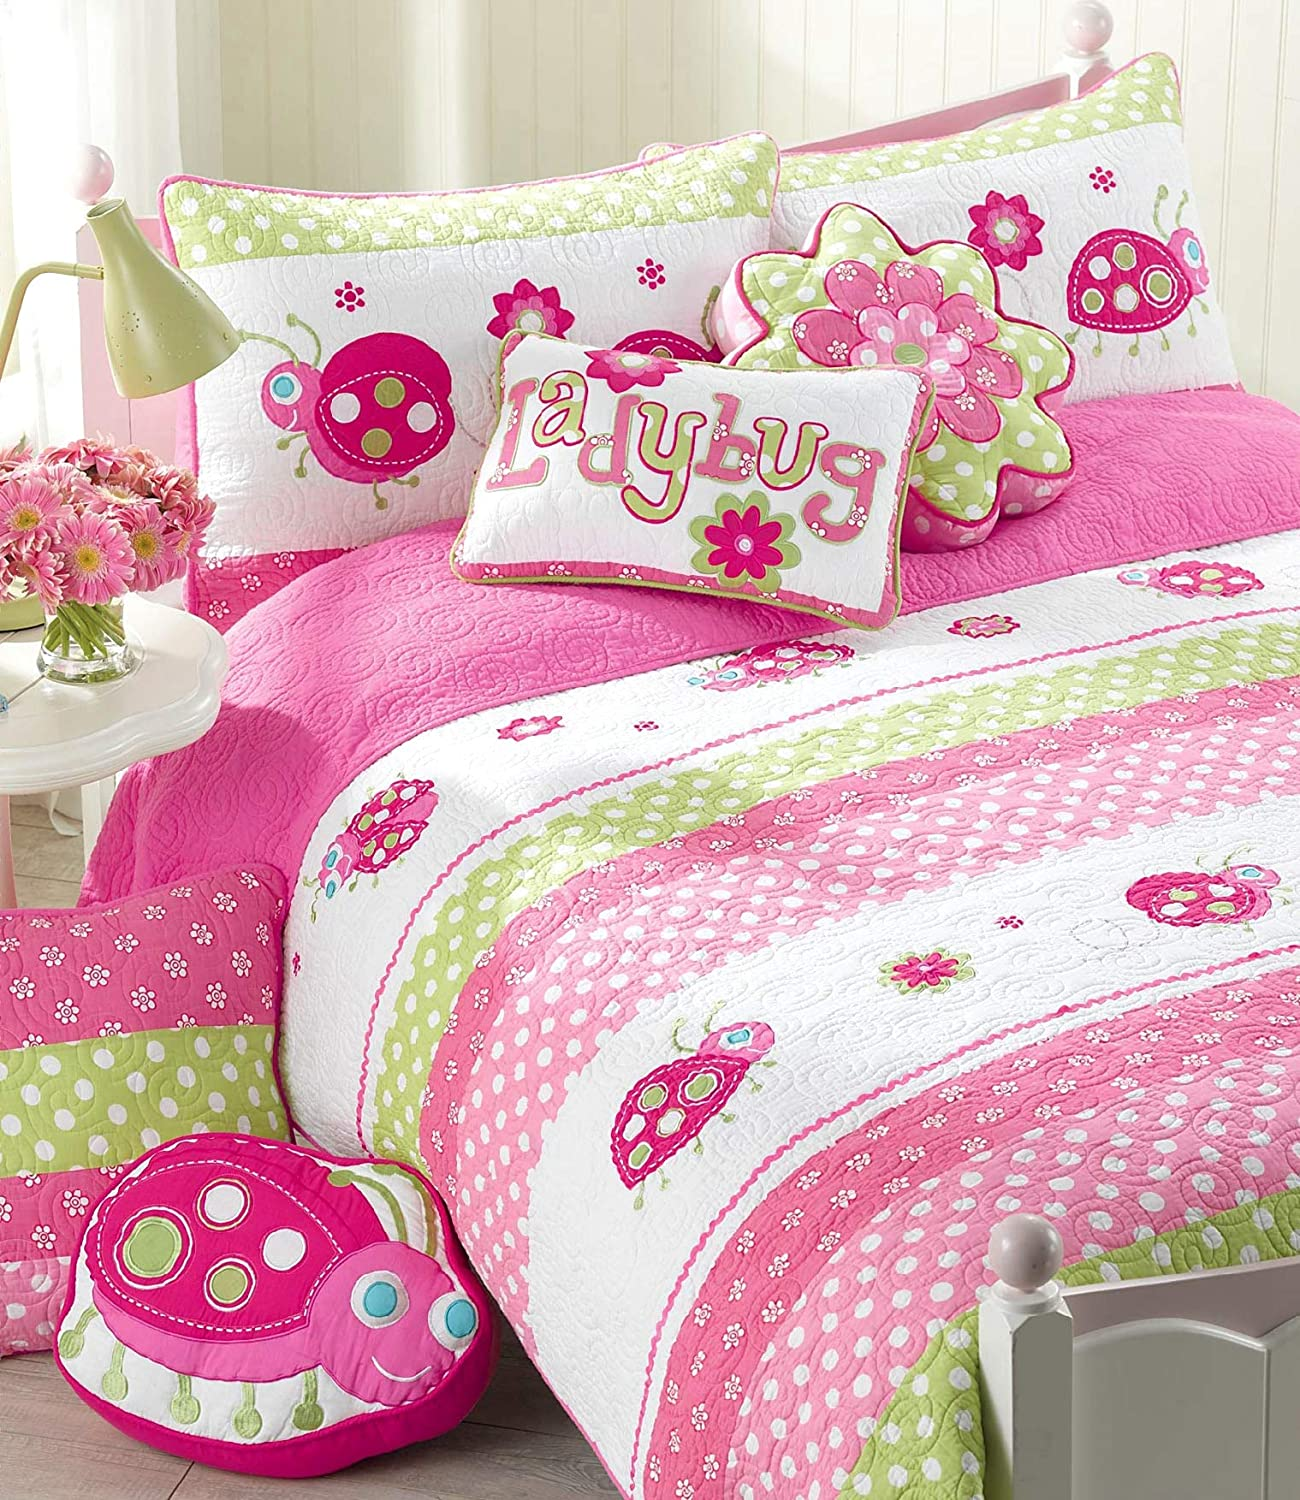 Cozy Line Home Fashions 6-Piece Pink Ladybug Quilt Bedding Set, Green Pink Flower Embroidered 100% Cotton Bedspread Coverlet Gift for Kids Girls